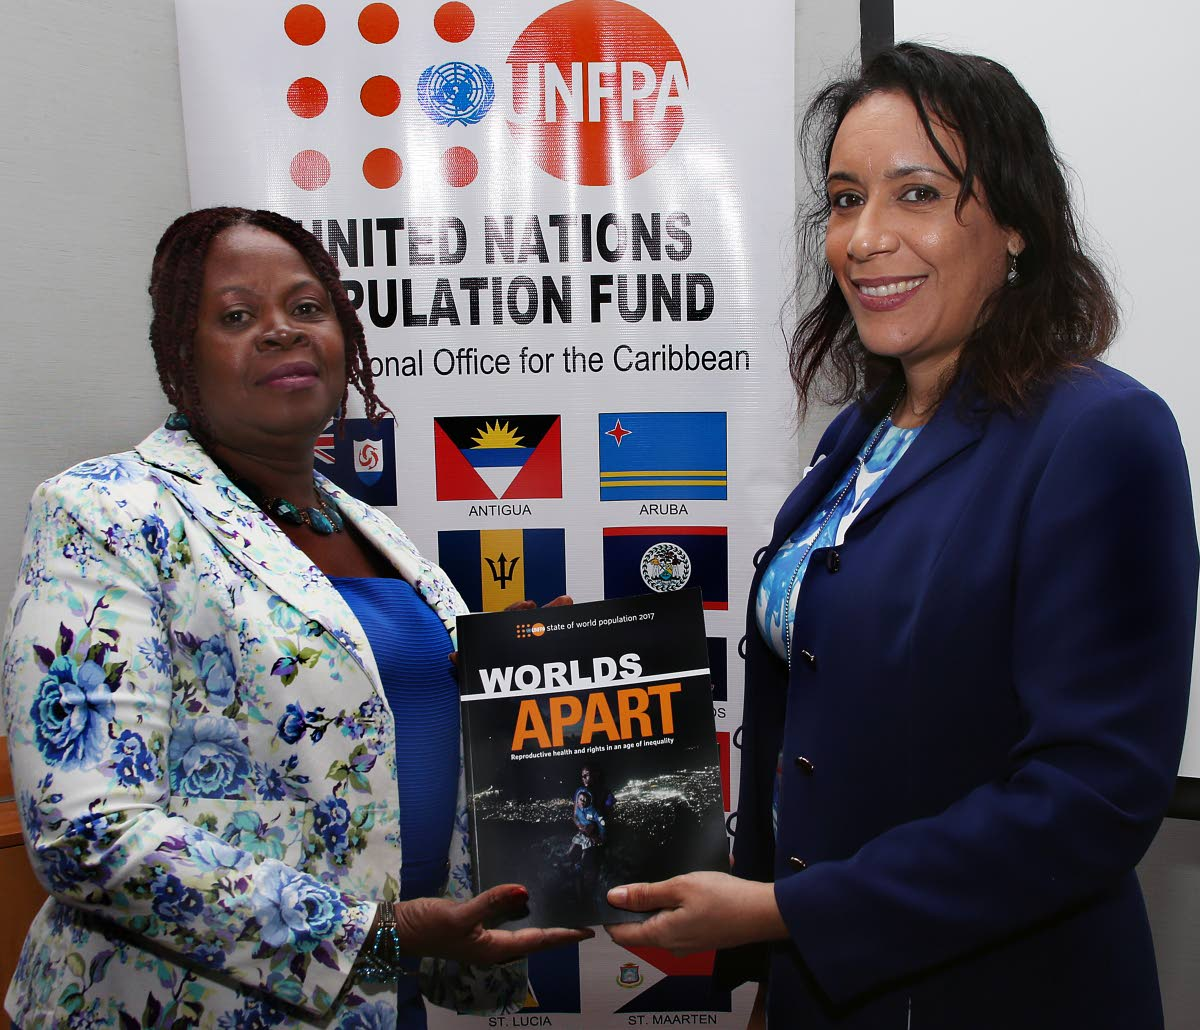 At right, UNFPA liaison officer Aurora Noguera - Ramkissoon presents a copy of the 2017 report tiled 'Worlds Apart